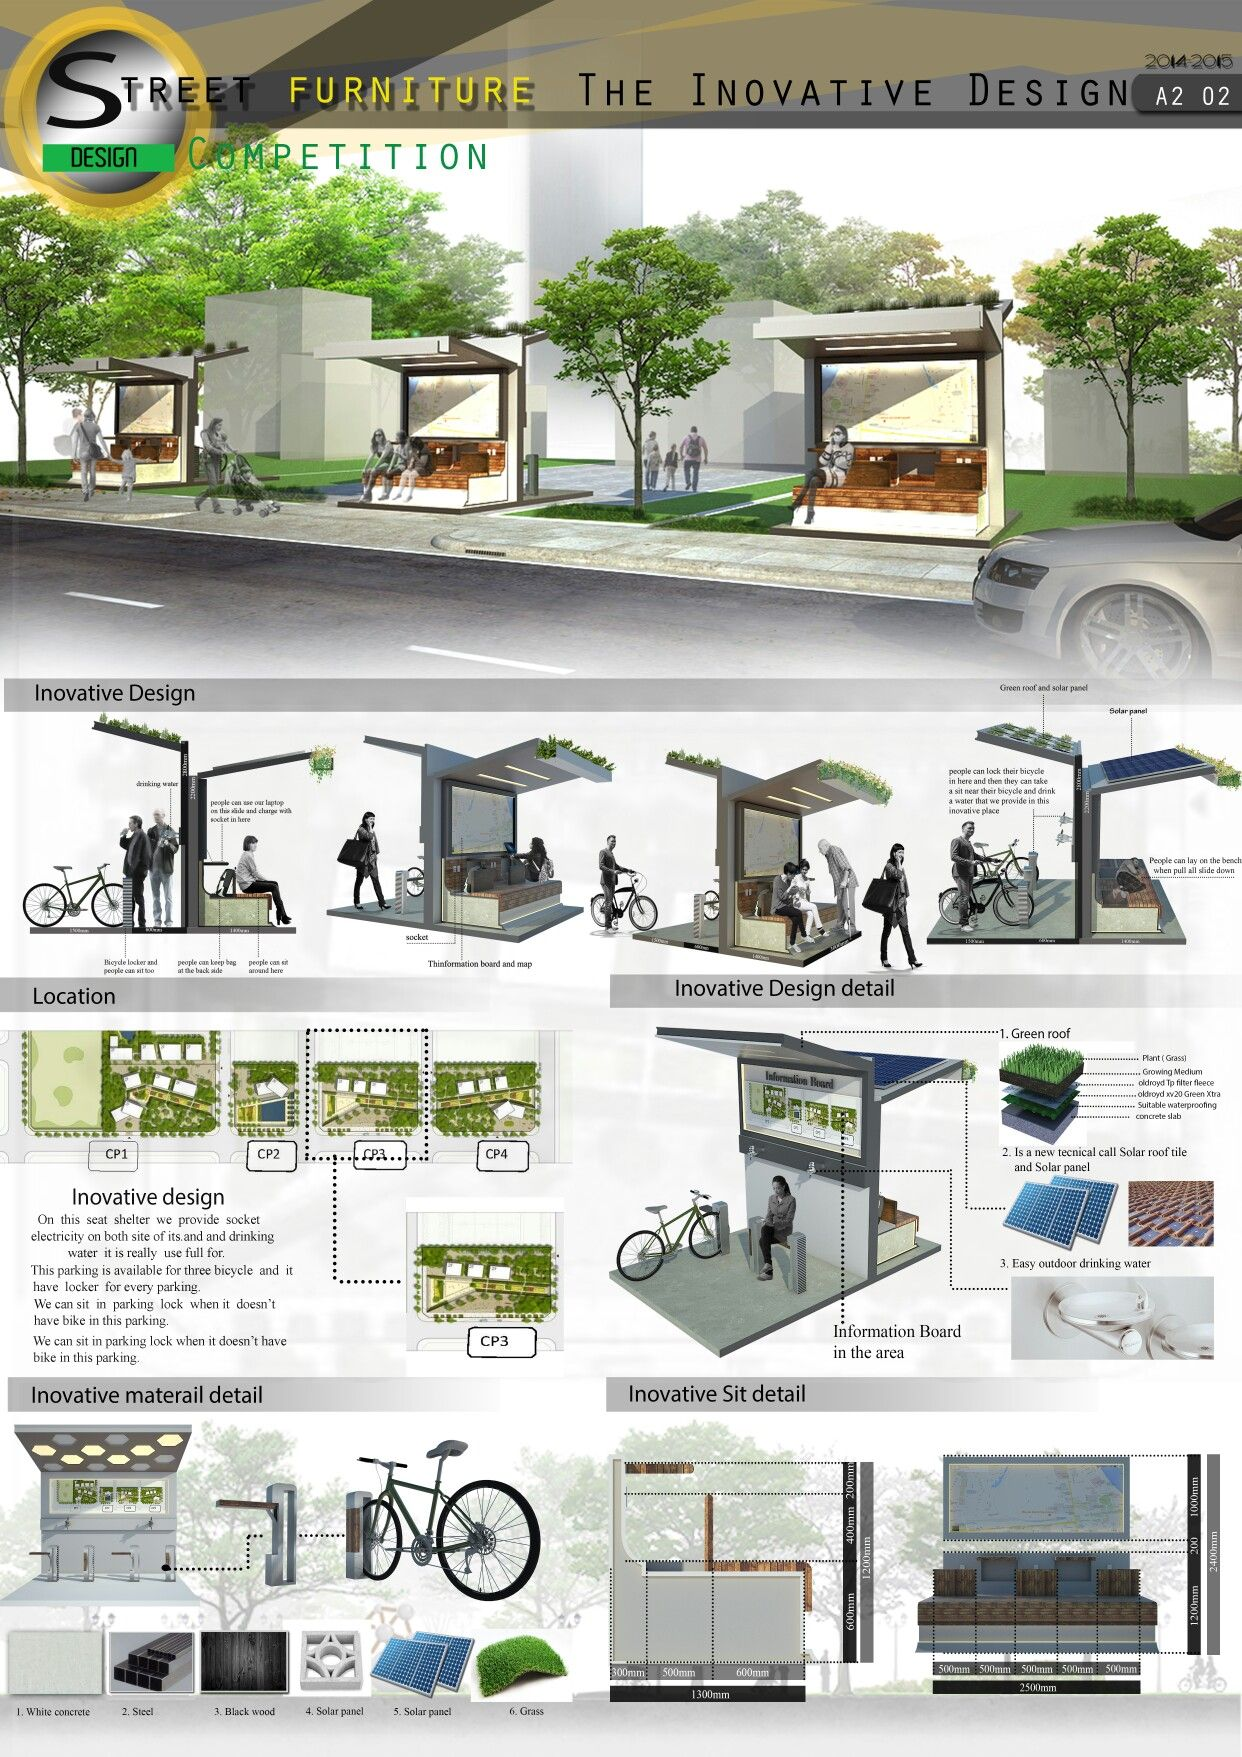 Pin By Lida Deedee On Street Furniture Design Competition